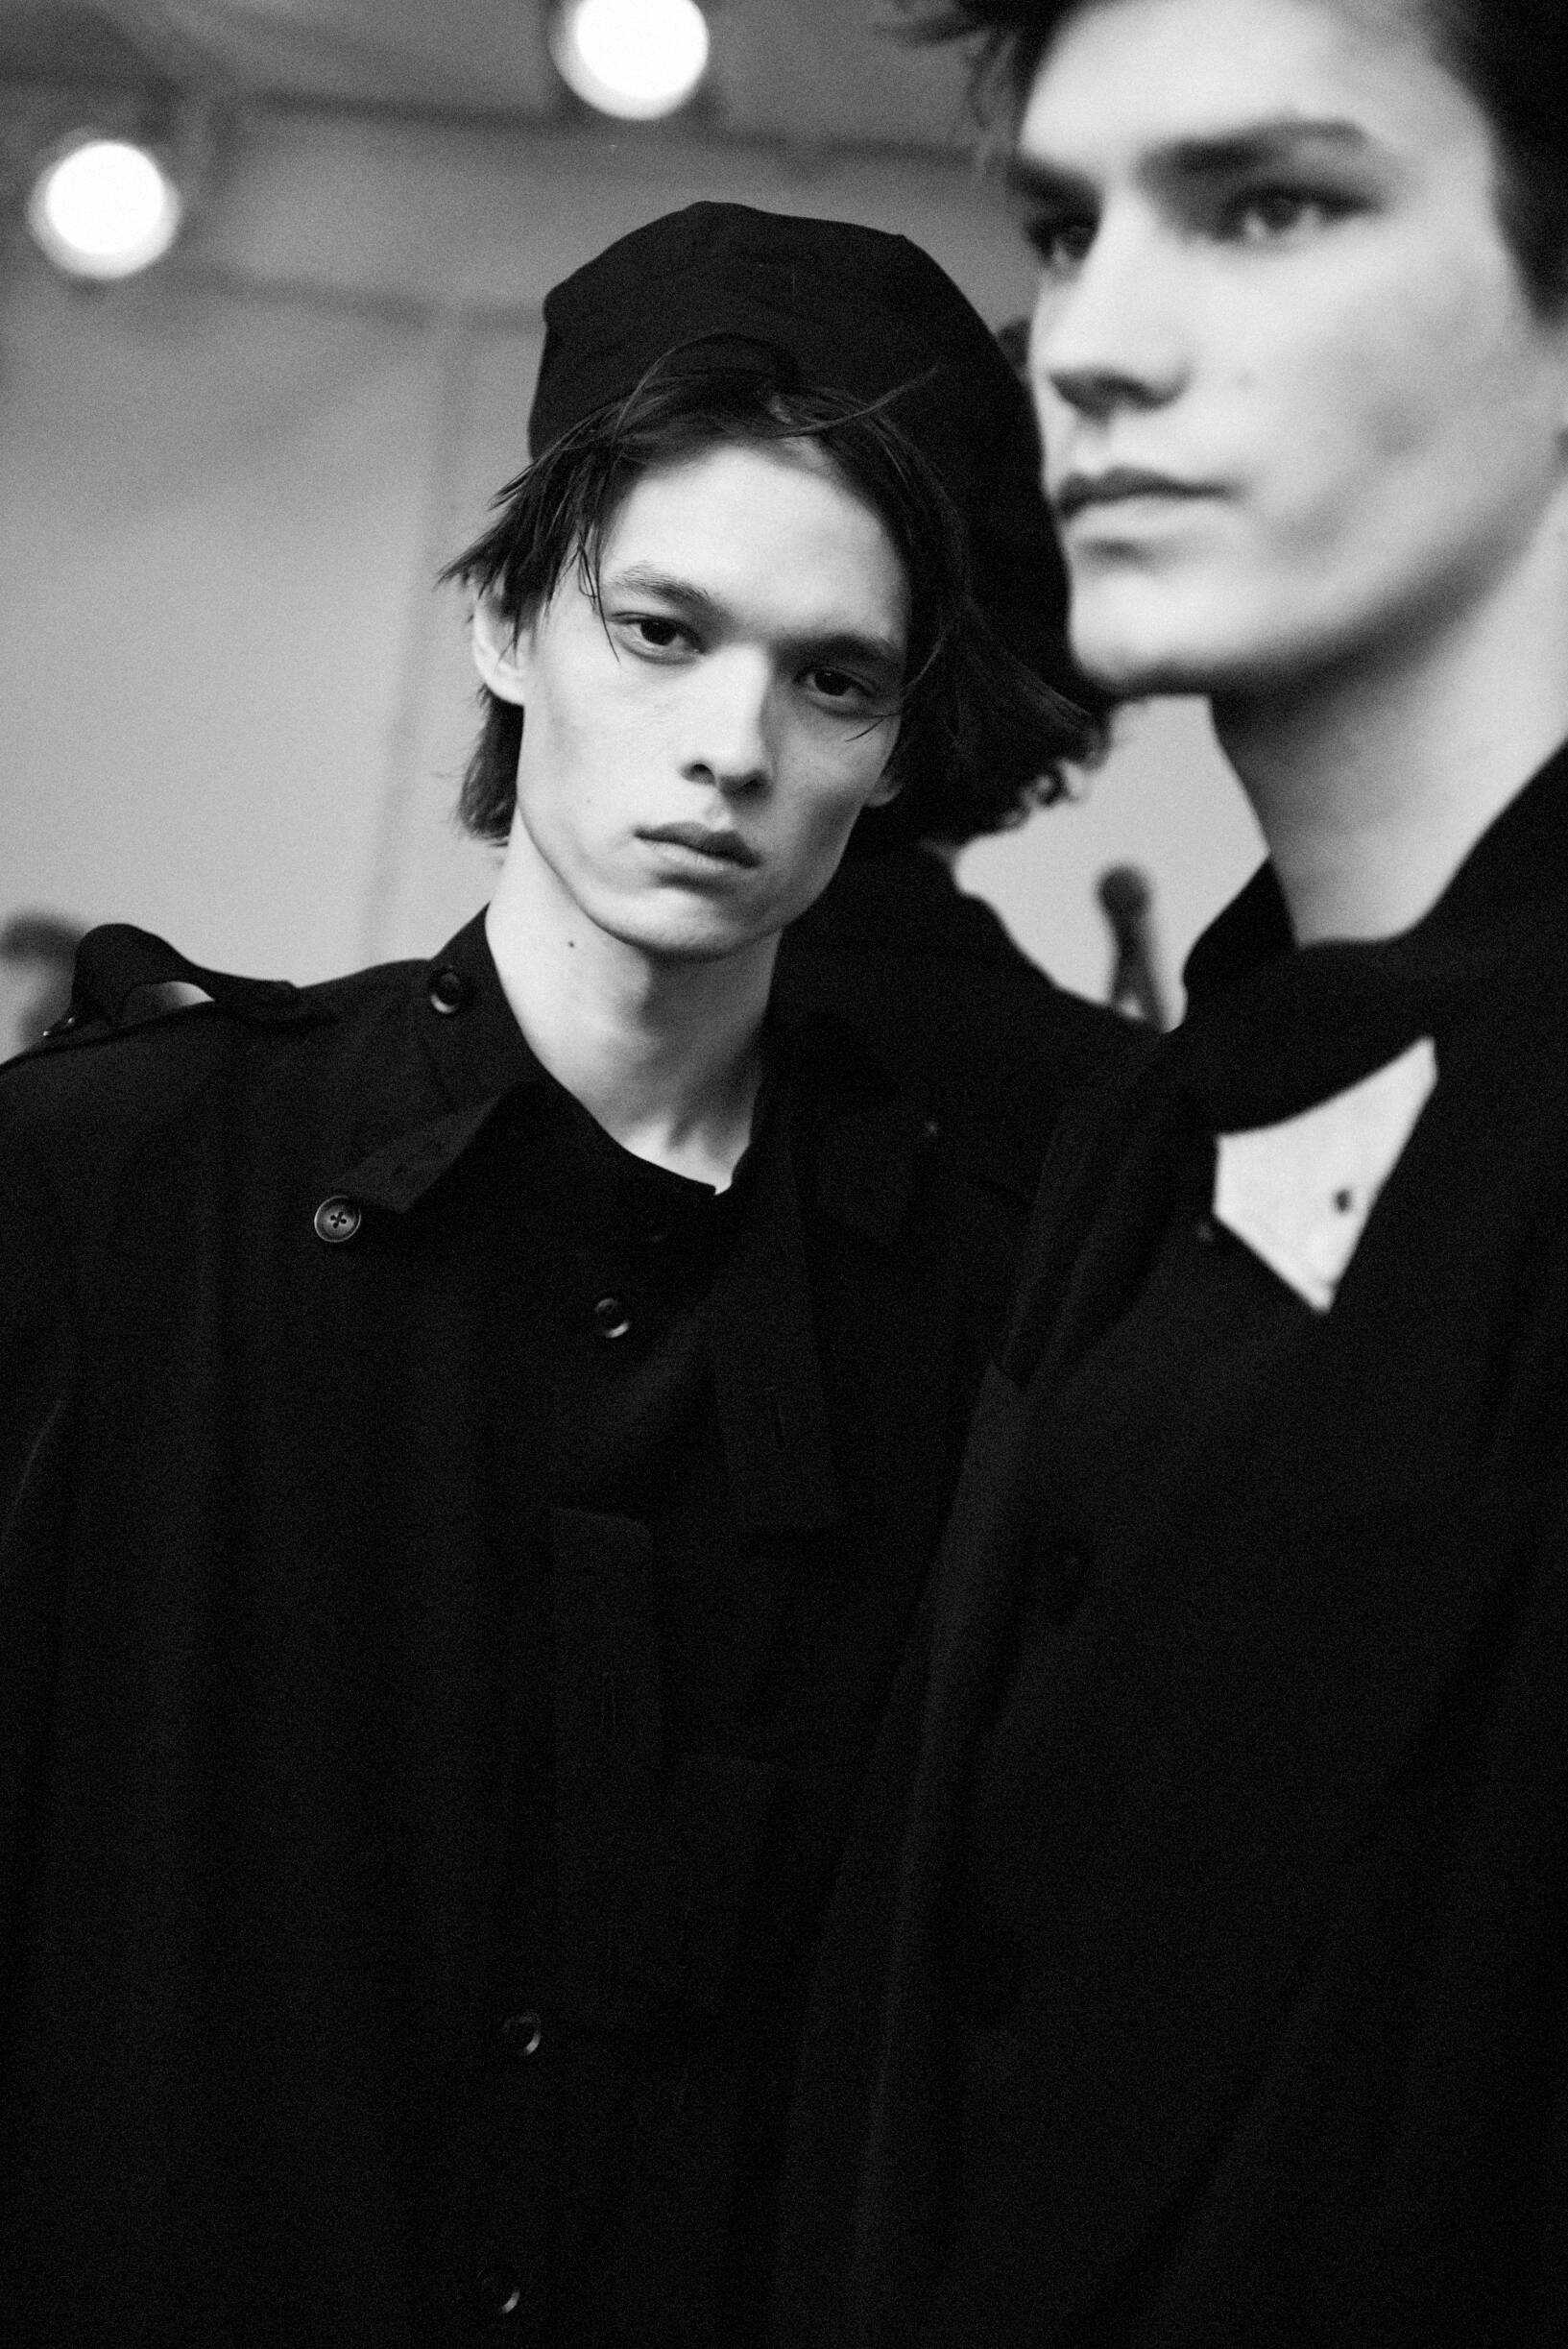 Models Backstage Yohji Yamamoto Spring Summer 2020 Collection